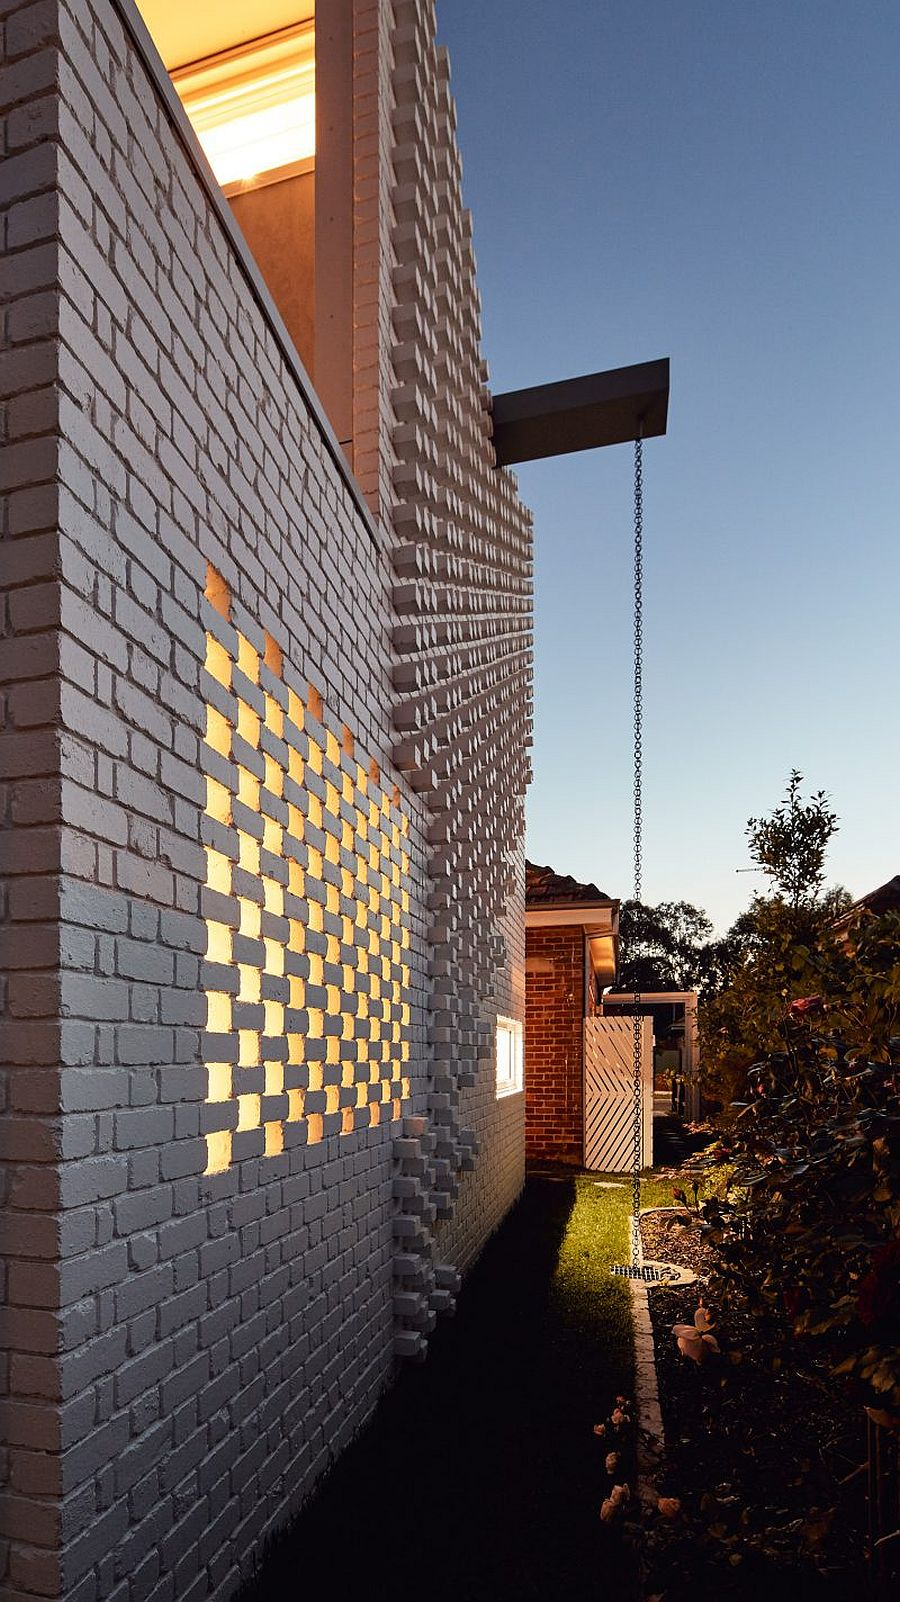 Unique brick wall extension with rain chain and other green features that make it planet-friendly